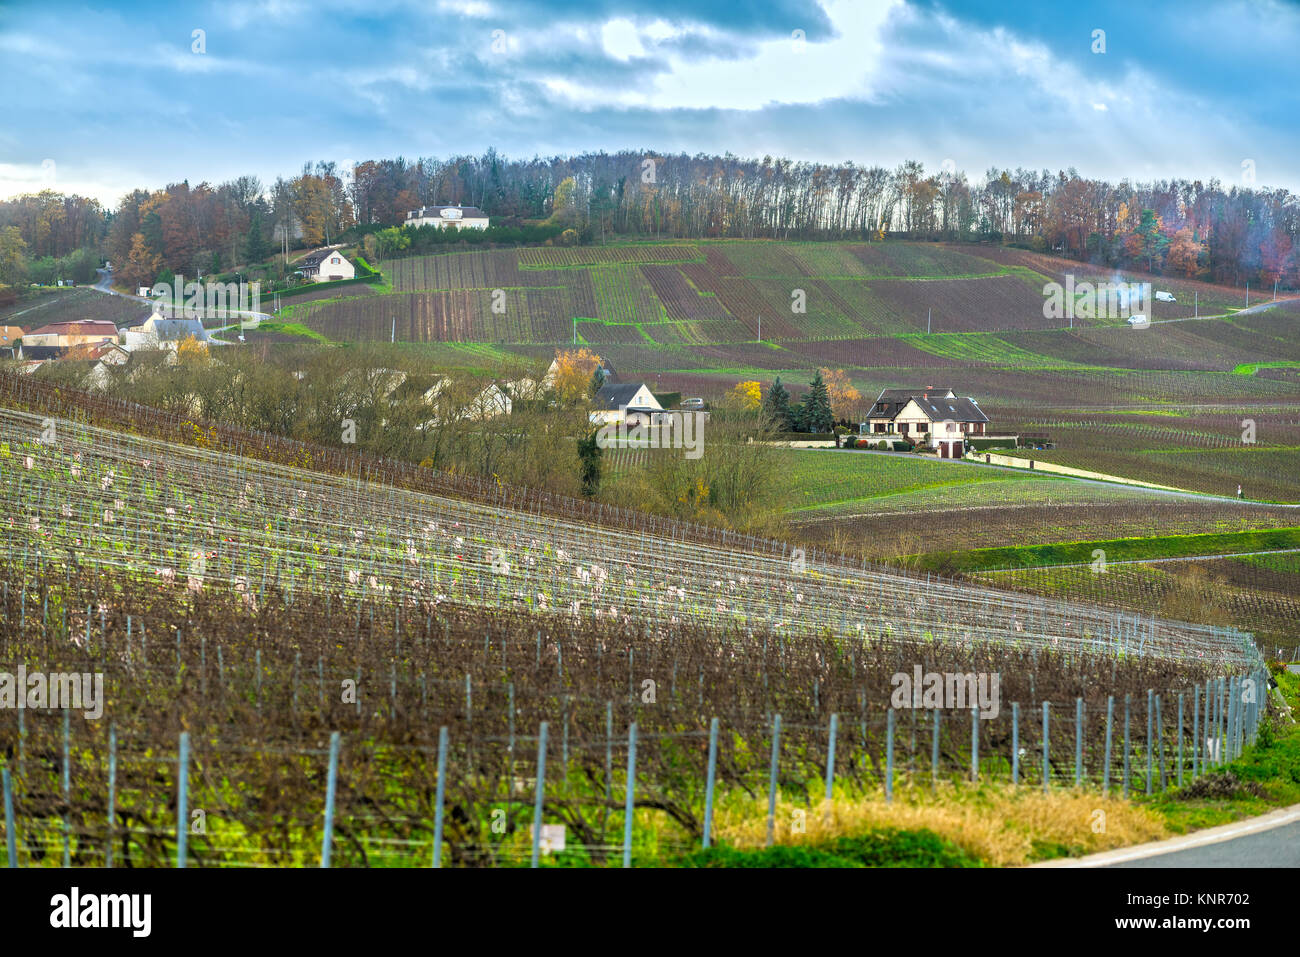 Champagne region france stock photos champagne region for Champagne region in france